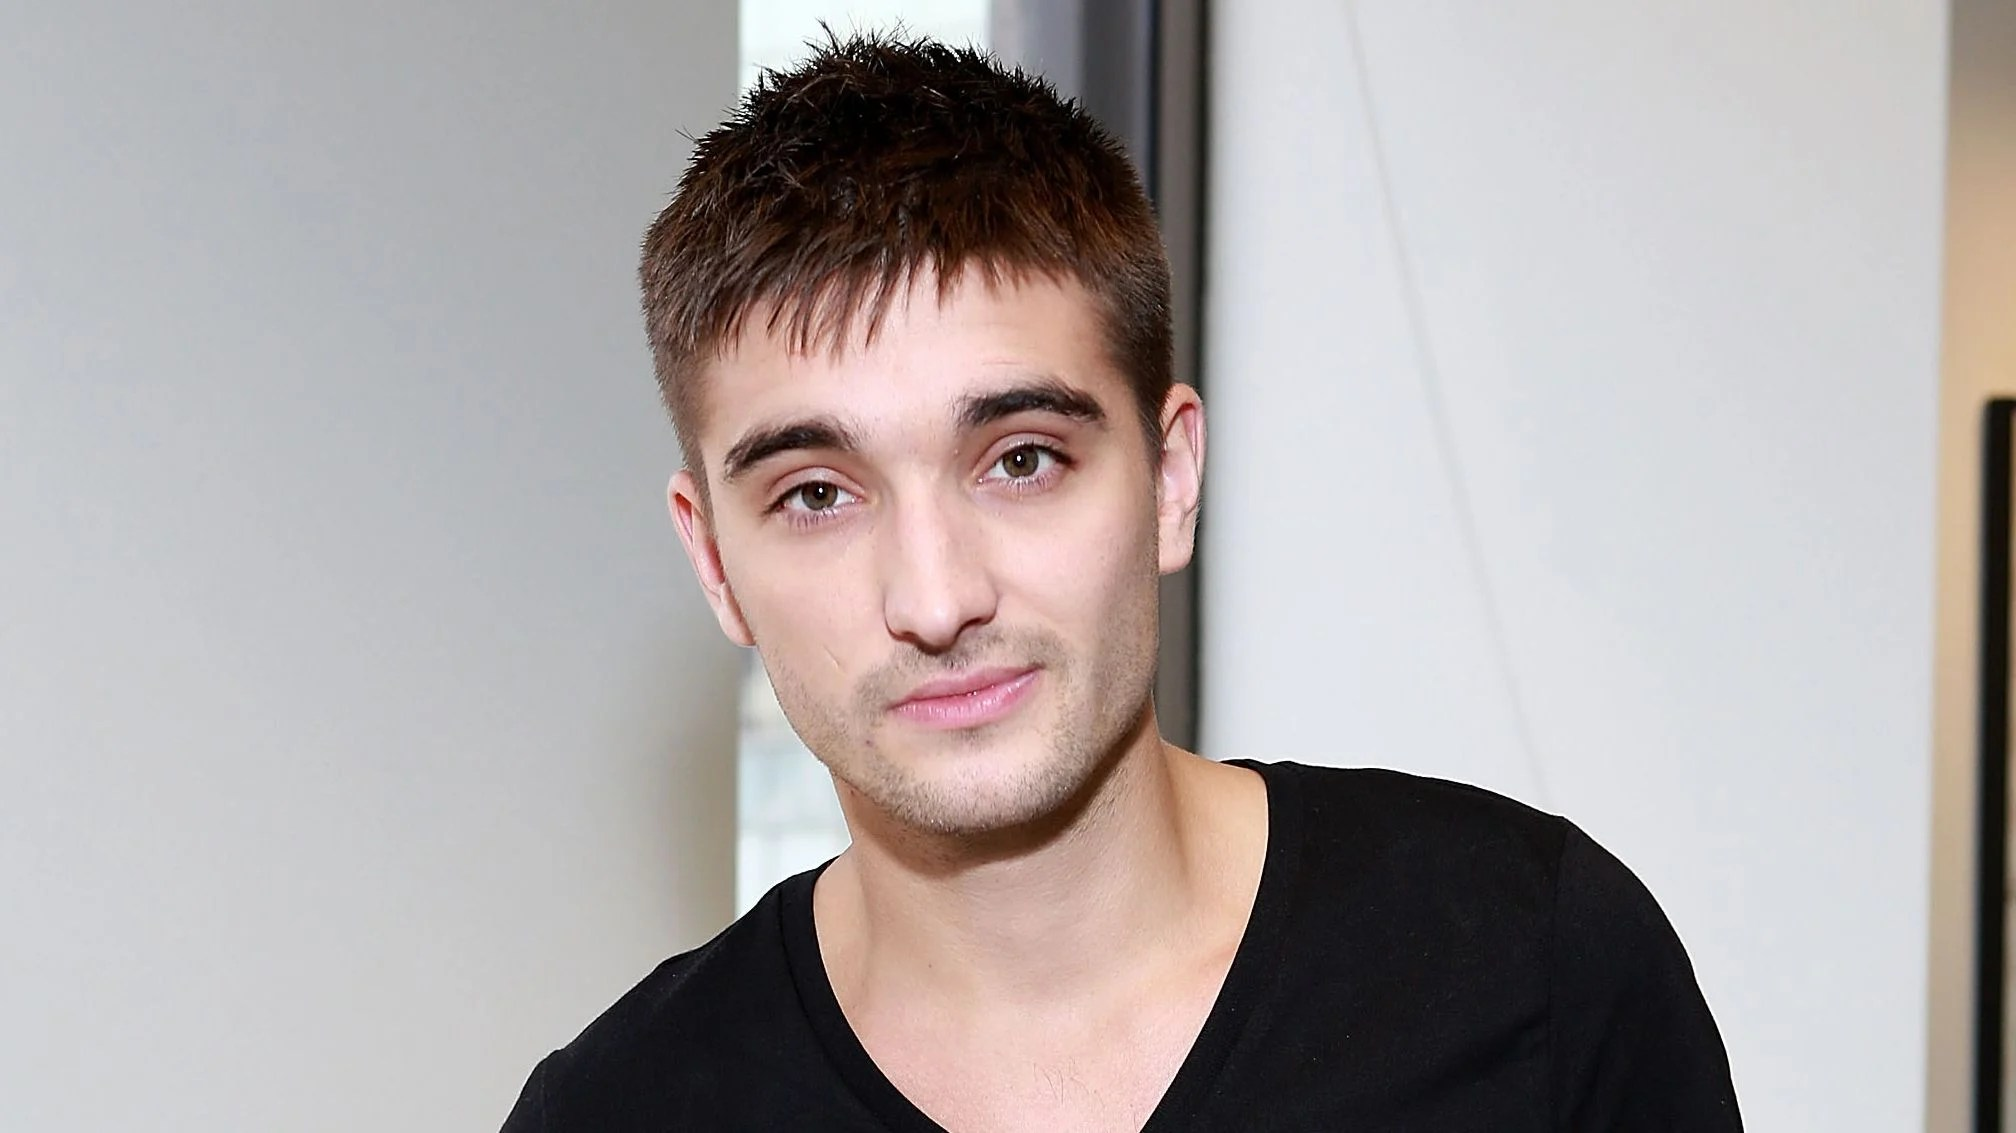 The couple has been together for more than 10 years. Tom Parker of 'The Wanted' diagnosed with terminal brain ...